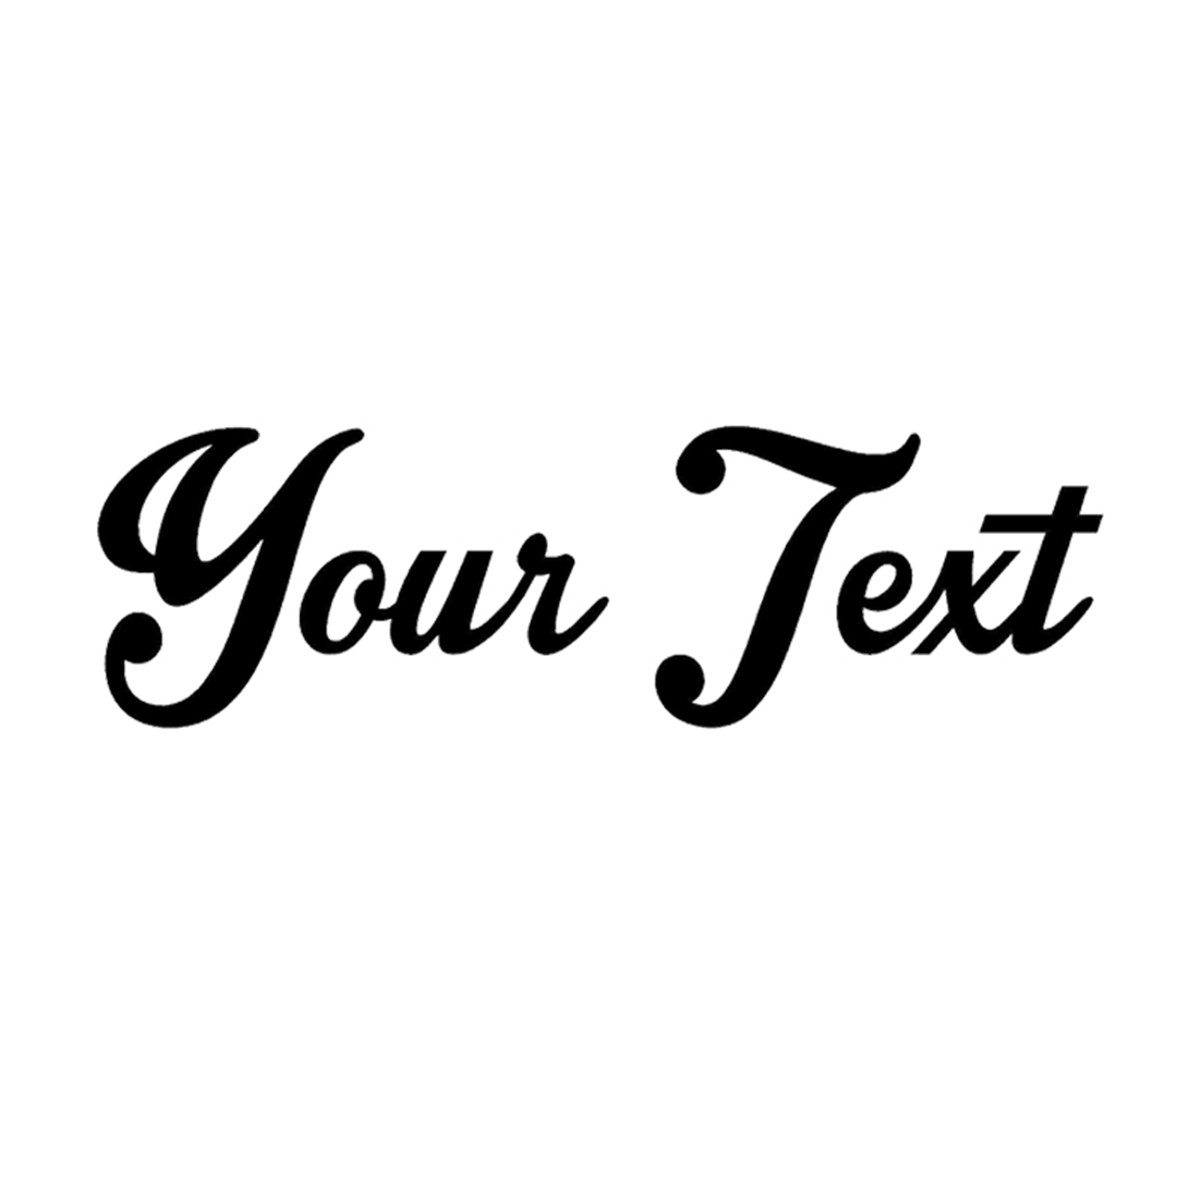 Details about your text vinyl decal sticker car window bumper custom 8 personalized lettering